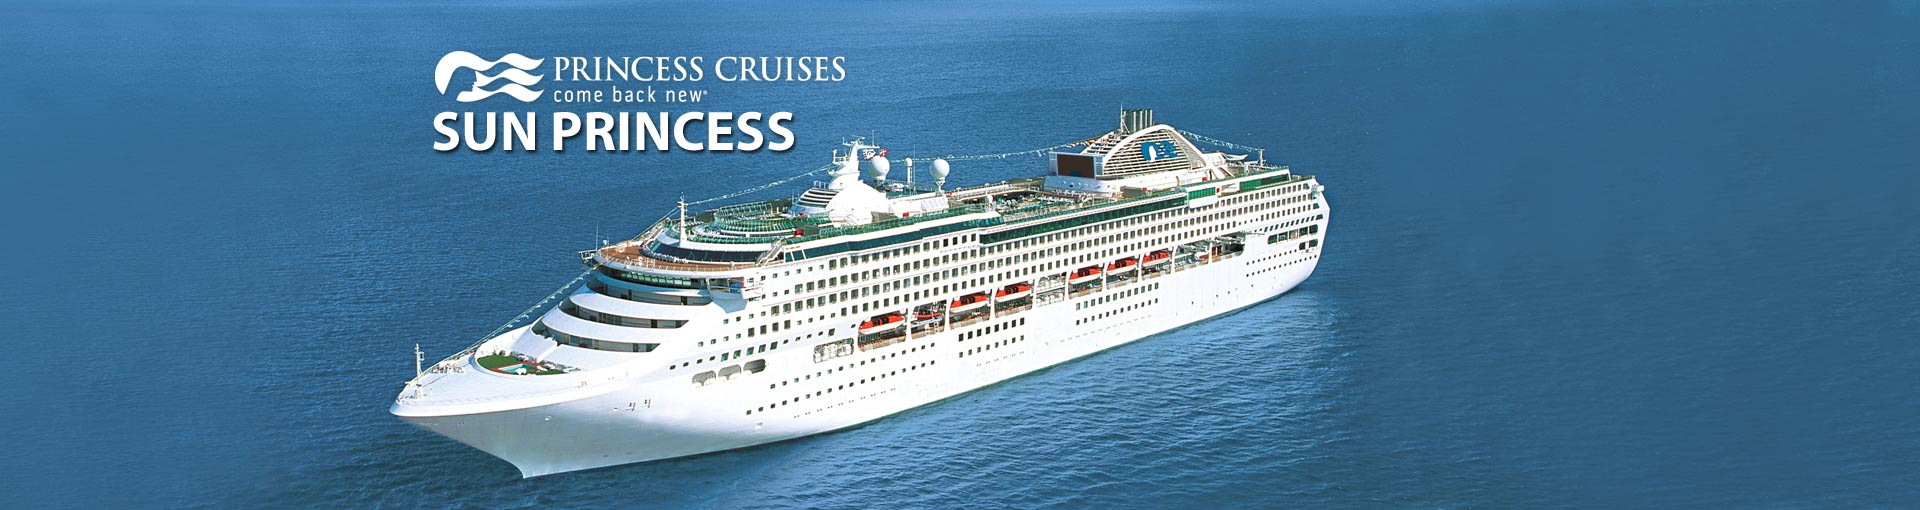 Sun Princess Cruise Ship 2017 And 2018 Sun Princess